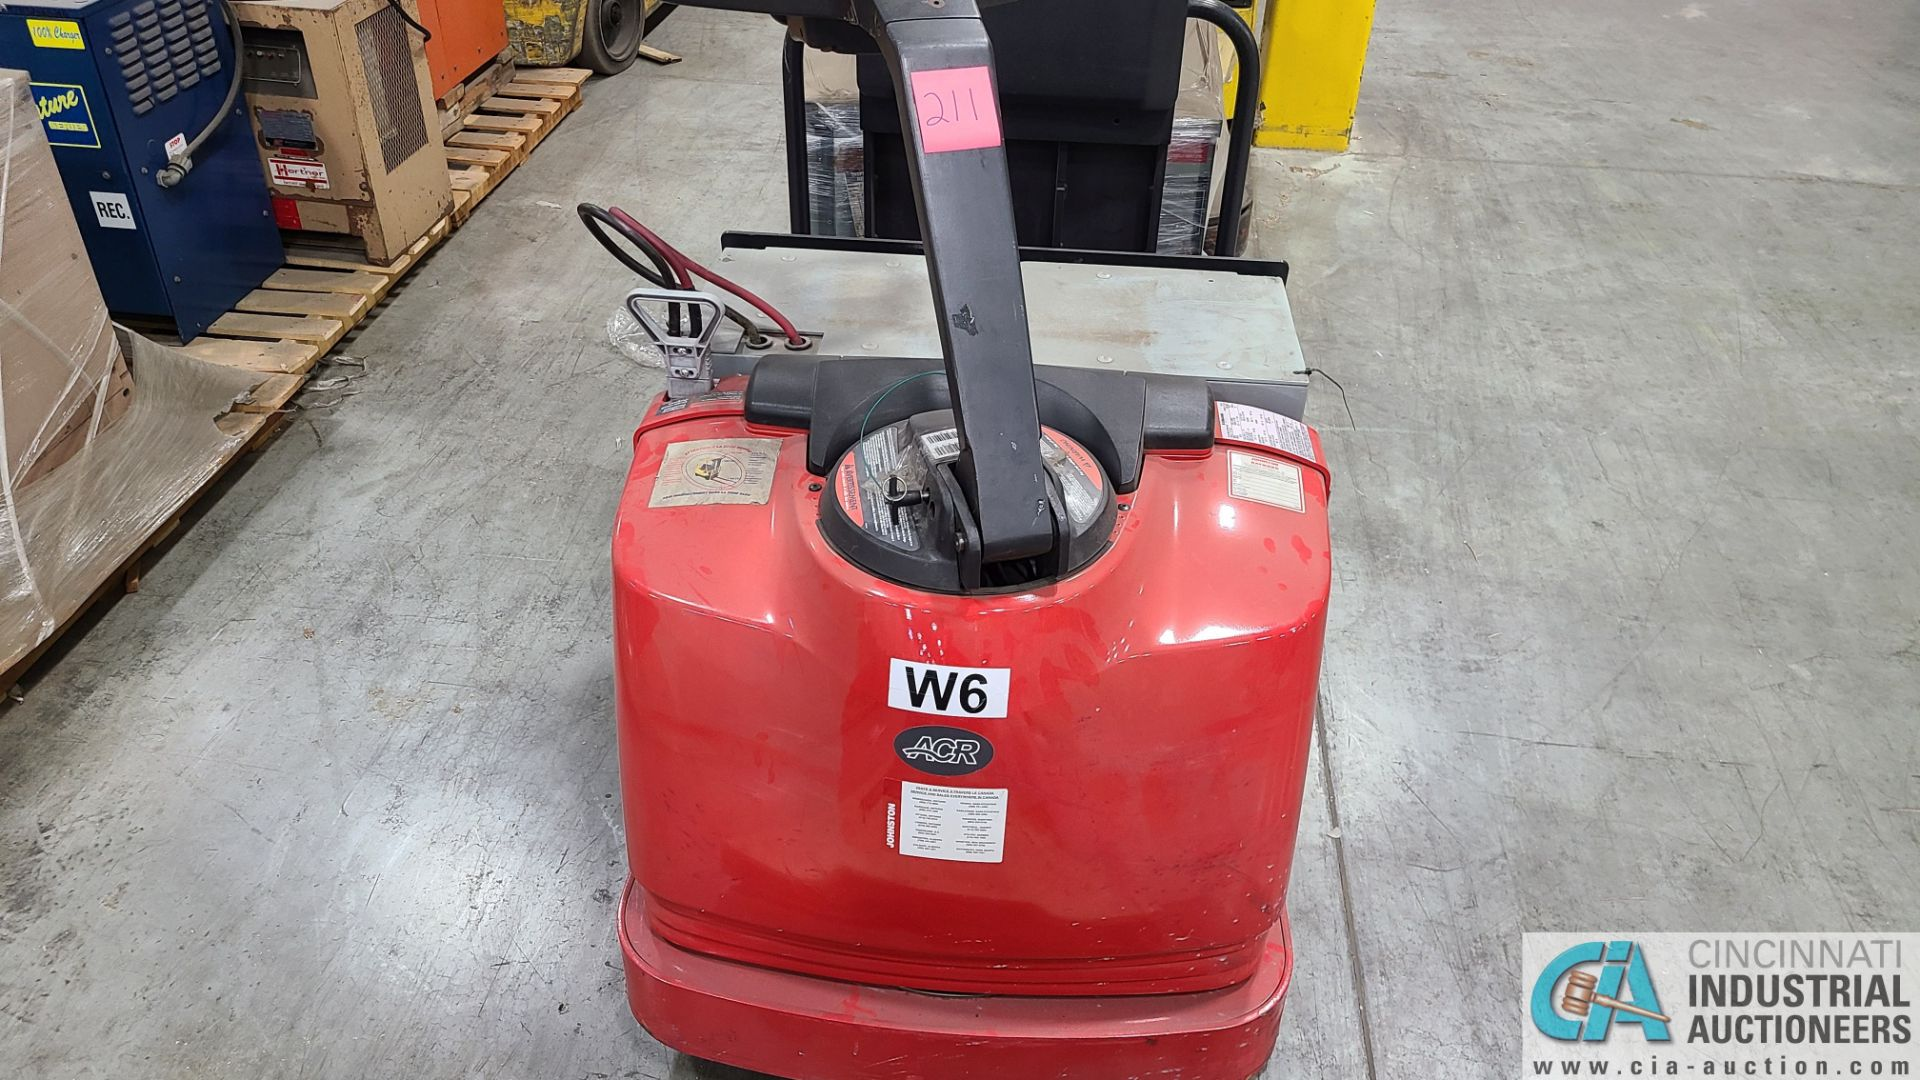 RAYMOND MODEL 8510 ELECTRIC PALLET TRUCK; S/N 851-15-11742, W/ BATTERY, HOURS N/A (NEW 2015) (2570 - Image 2 of 4